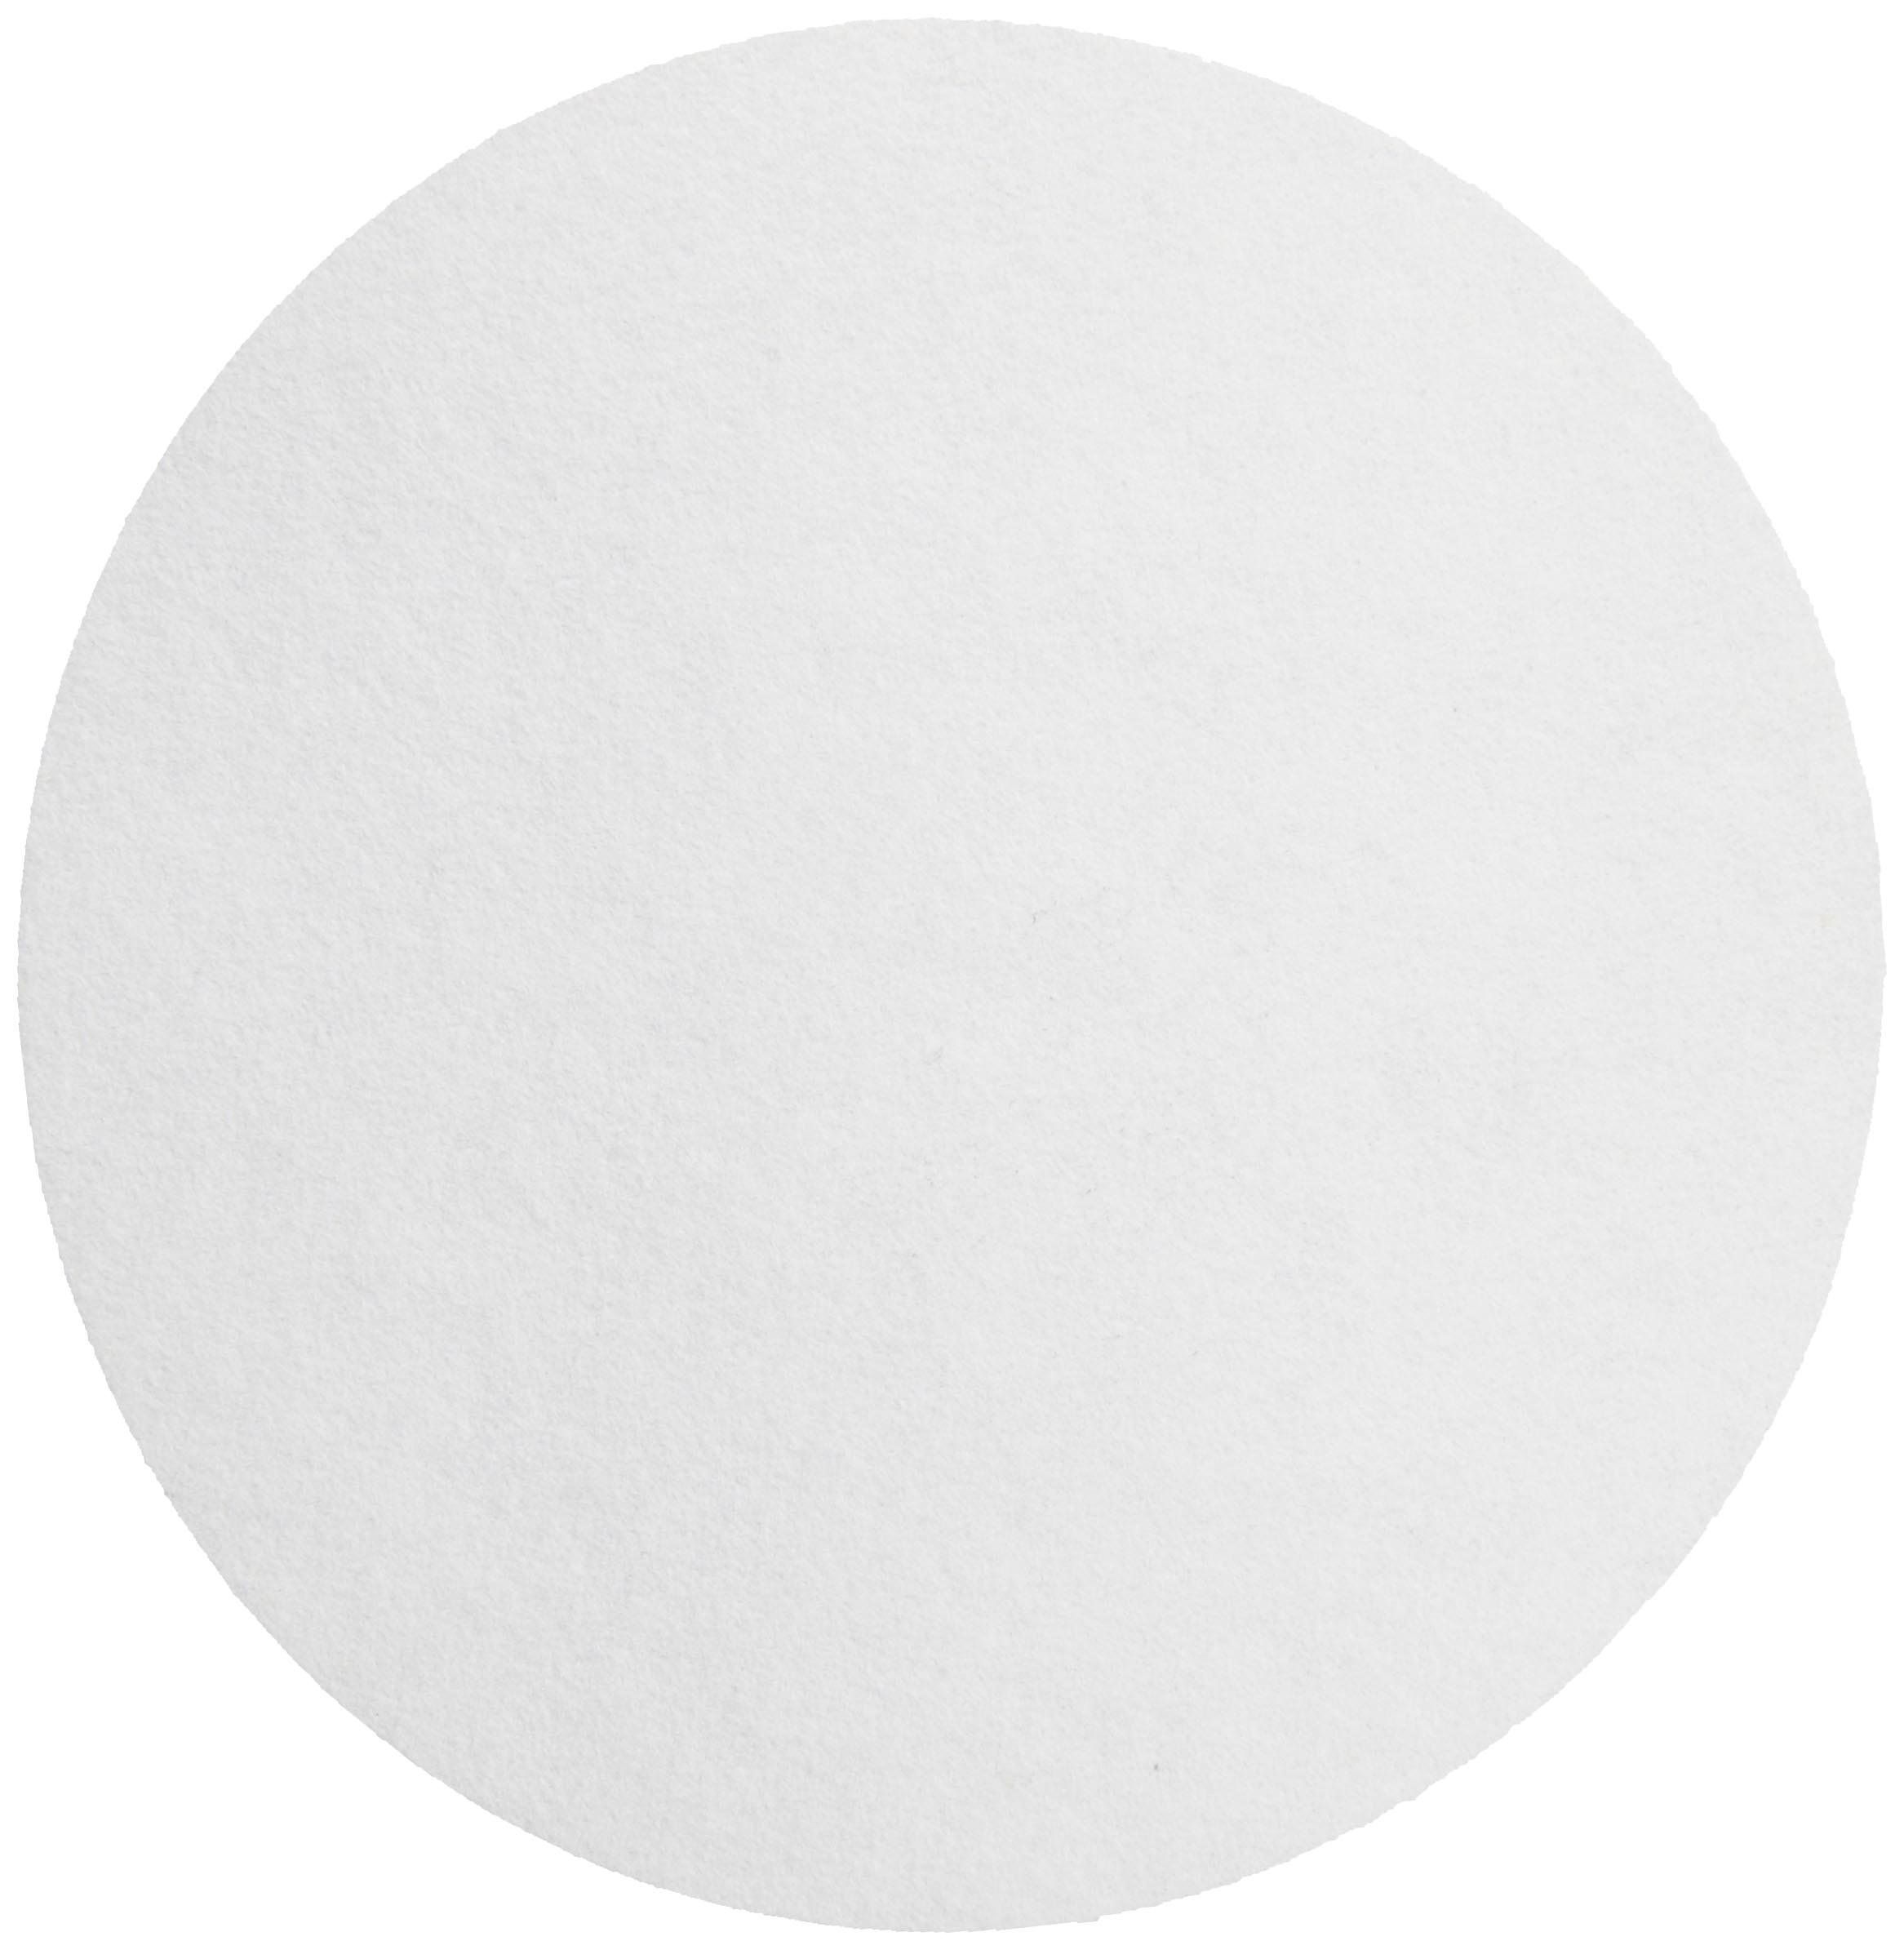 Whatman 1003-070 Quantitative Filter Paper Circles, 6 Micron, 26 s/100mL/sq inch Flow Rate, Grade 3, 70mm Diameter (Pack of 100)